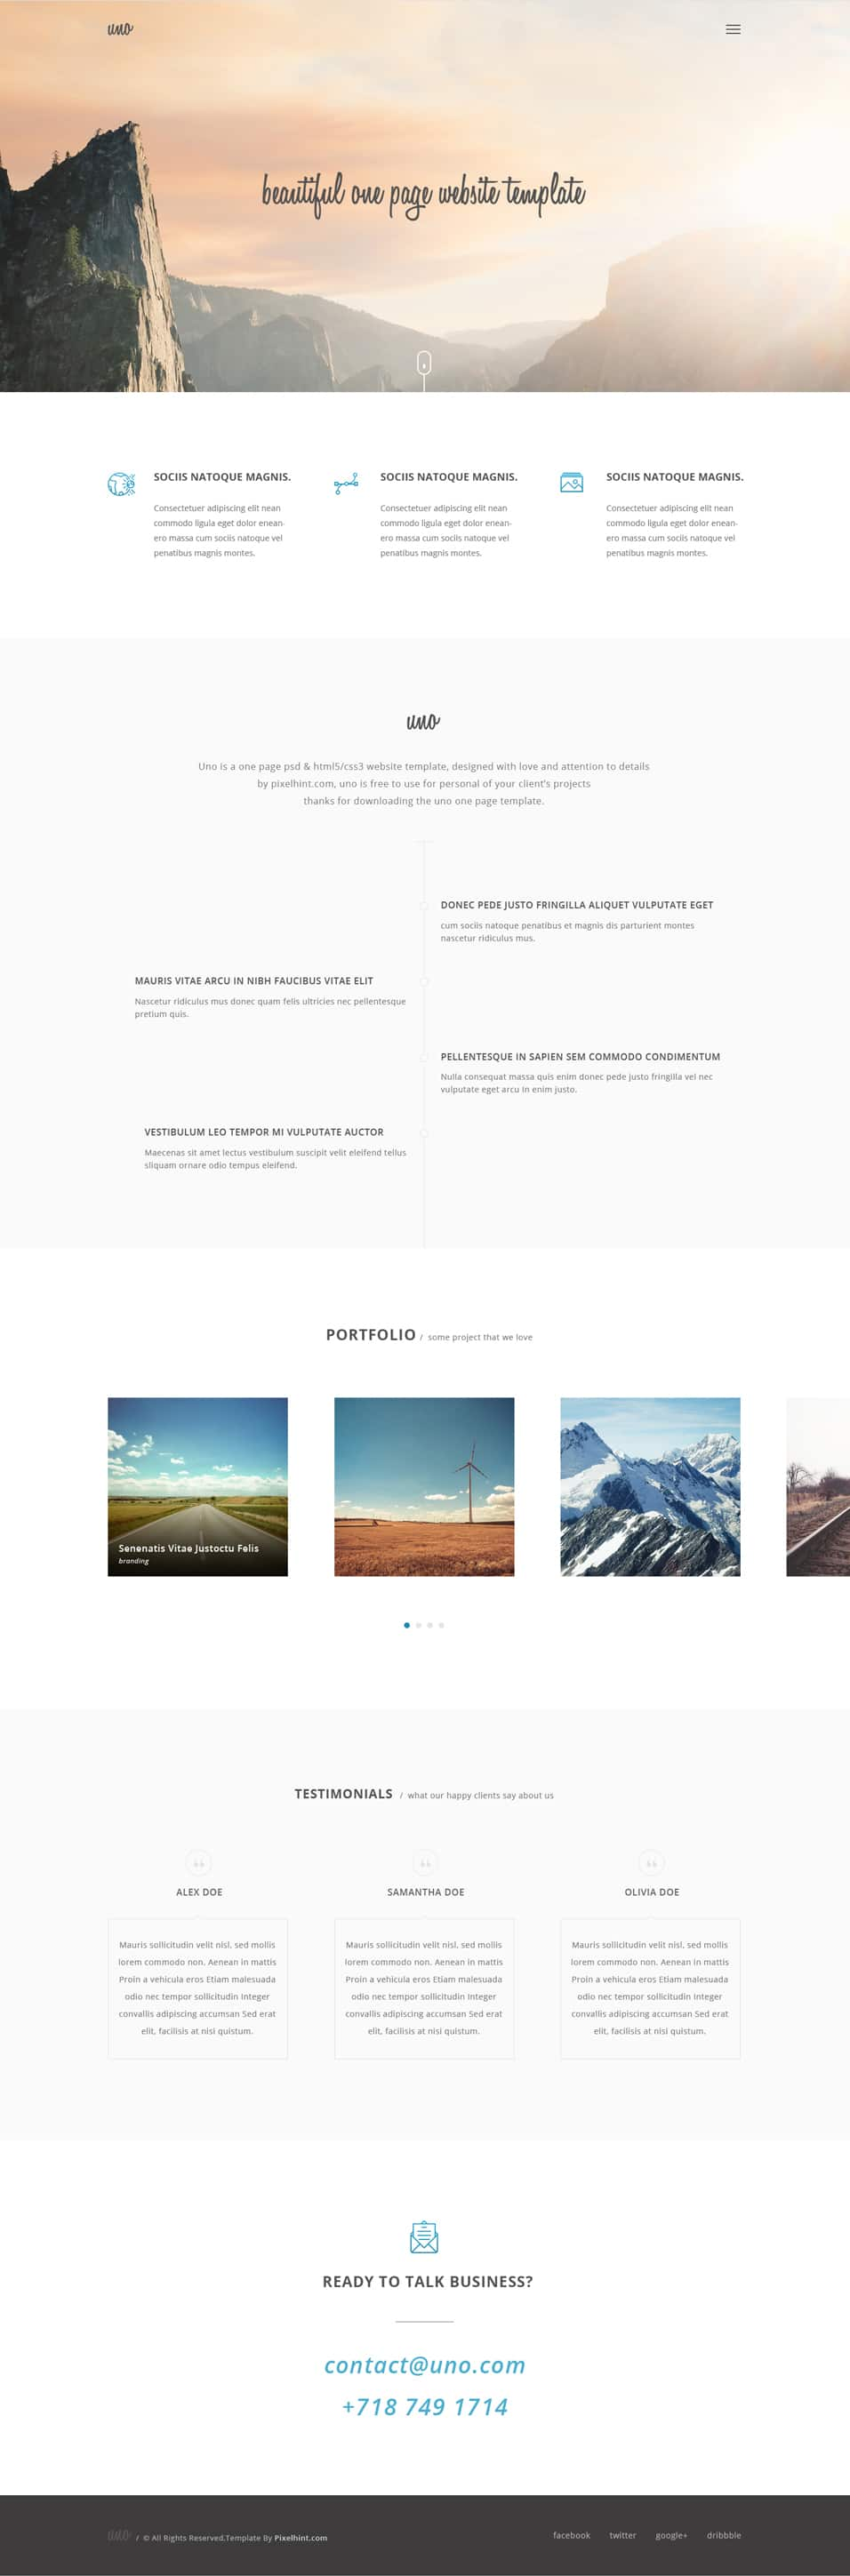 no Free Elegant One Page Single Page Website Template PSD